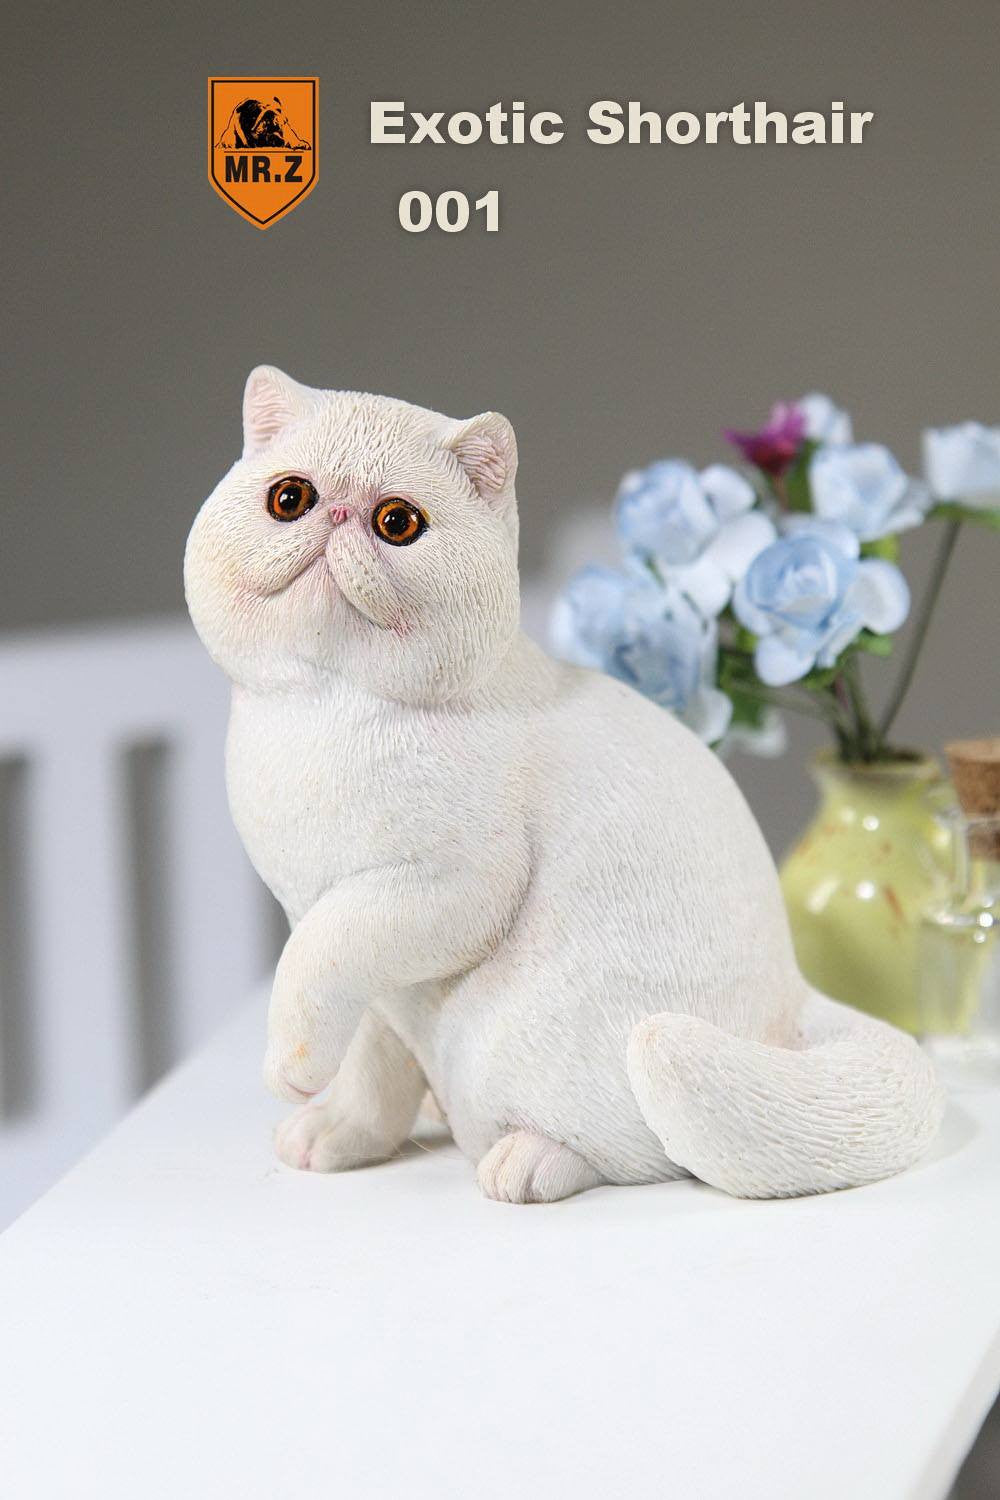 MR.Z - Real Animal Series No.8 - 1/6th Scale Exotic Shorthair Cat (Garfield) 001-005 - Marvelous Toys - 7